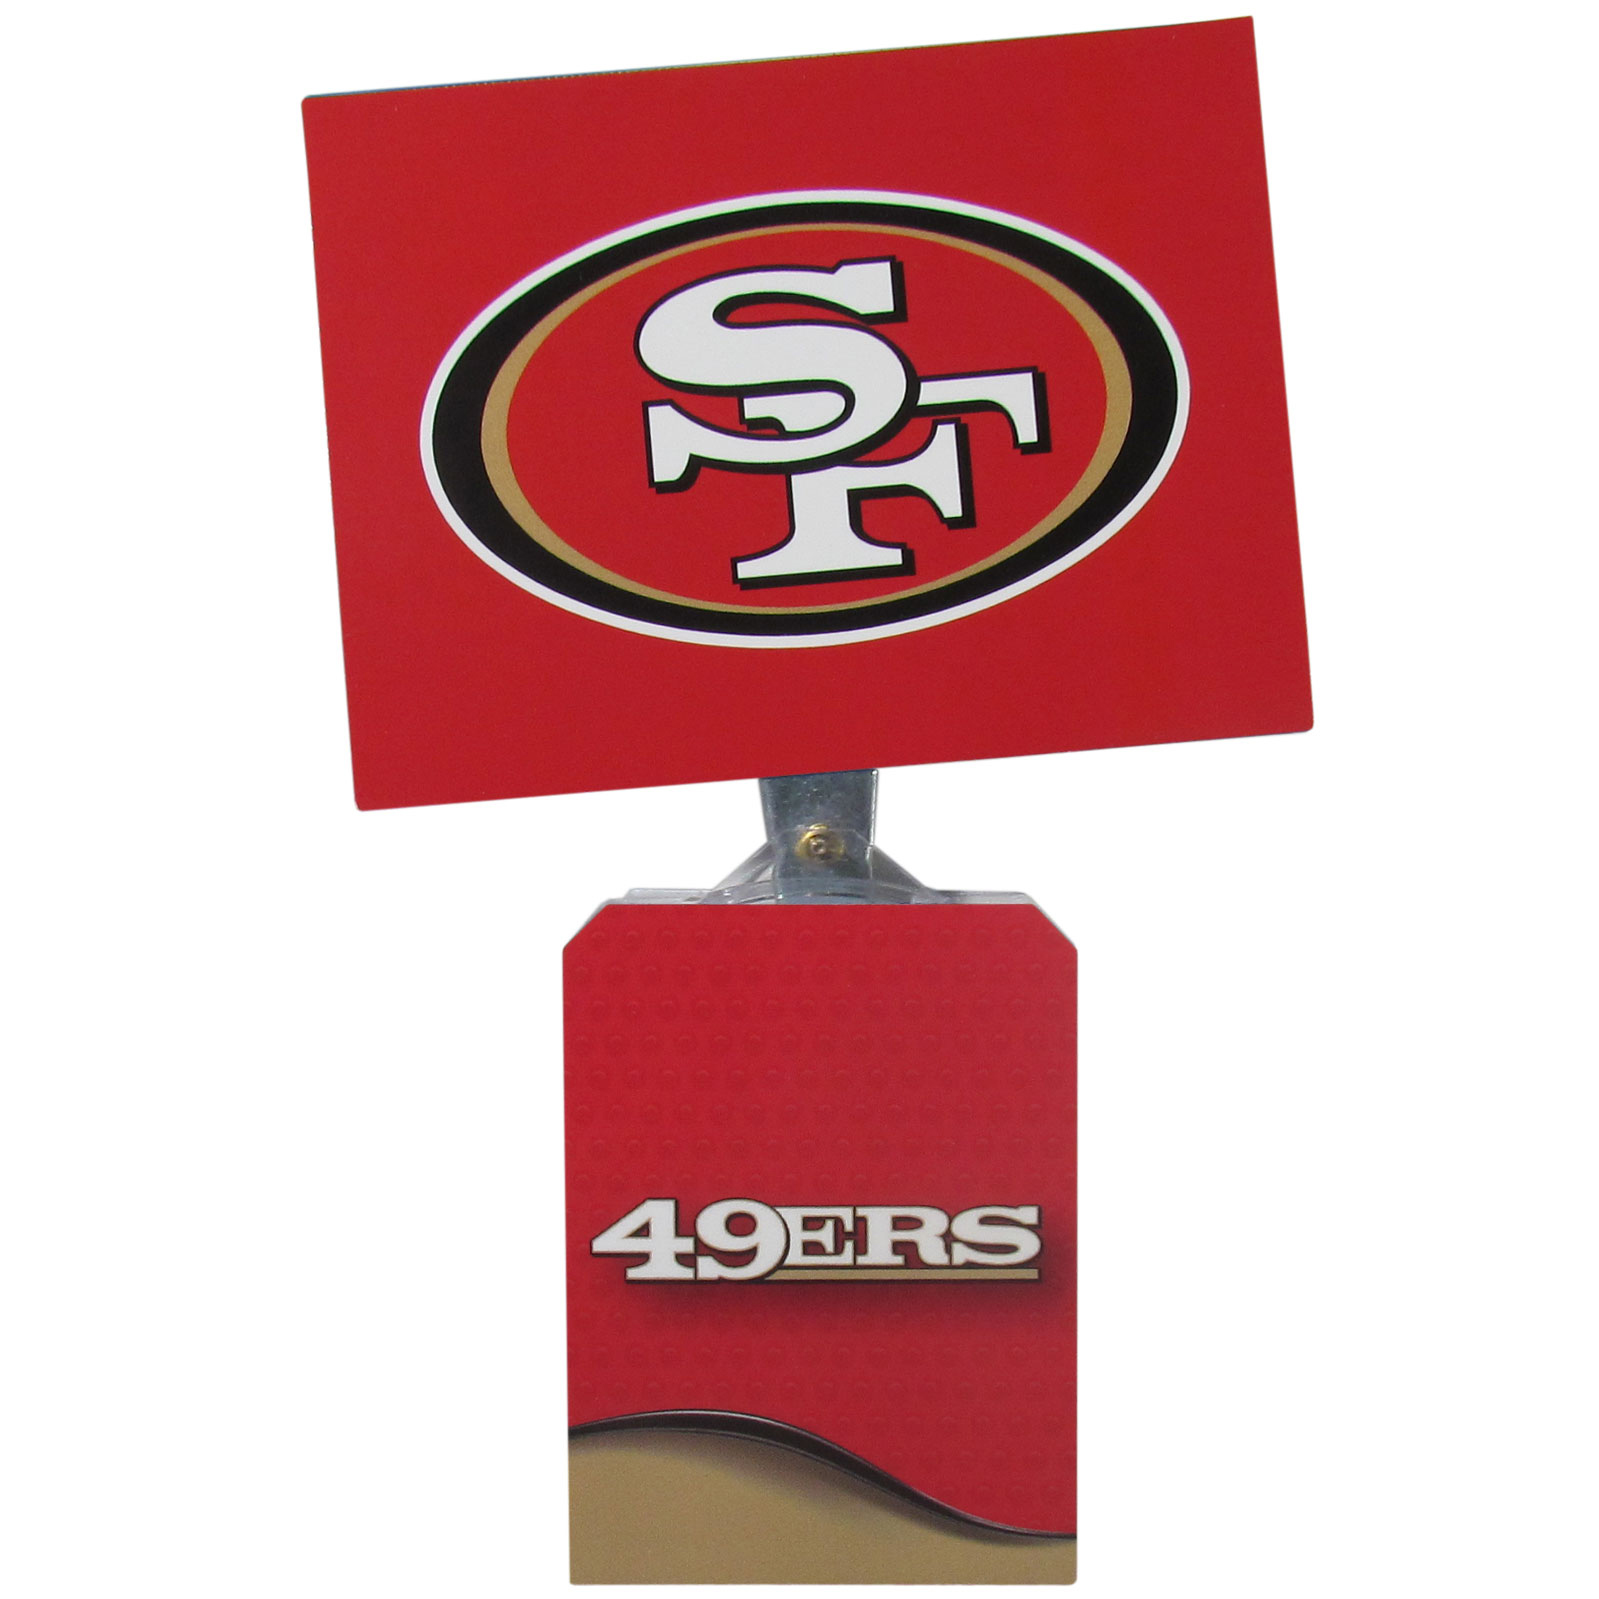 San Francisco 49ers Solar Flags - Get pumped up on the way to game with Siskiyou's Chicago Bears San Francisco 49ers Solar Flag that mounts to your dashboard or window. The in-motion solar flag also doubles as decoration for your tailgate or homegate! The base of the flag is 3 inches tall and the flag is 4 inches making the entire in-motion solar flag stand at 7 inches tall. Keep your spirit moving with your favorite team's Solar Flag.